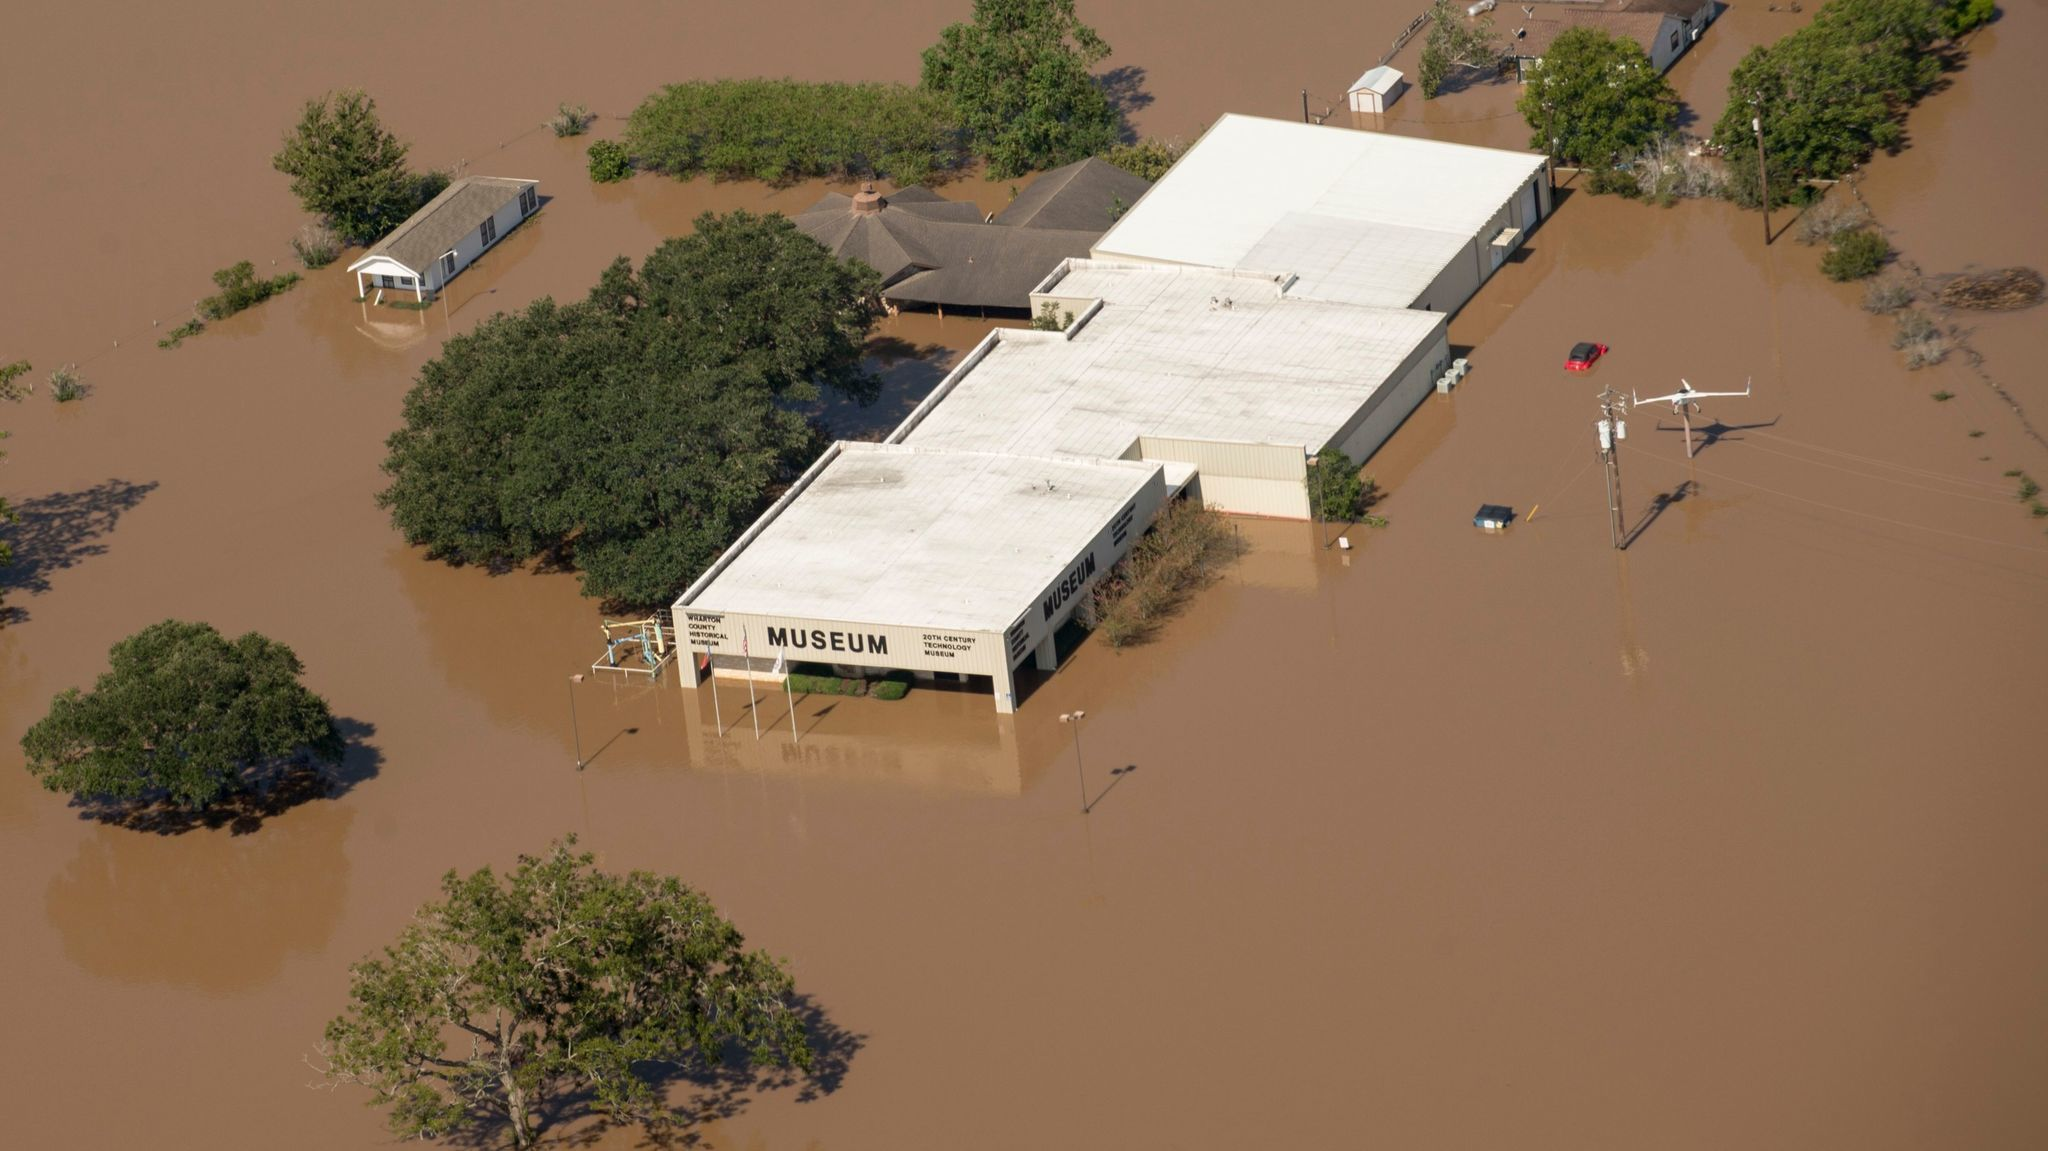 Inundated by floodwater by tropical storm Harvey, the Wharton County Historical Museum and 20th Century Technology Museum as seen from an aerial photo made available by the US Air Force.